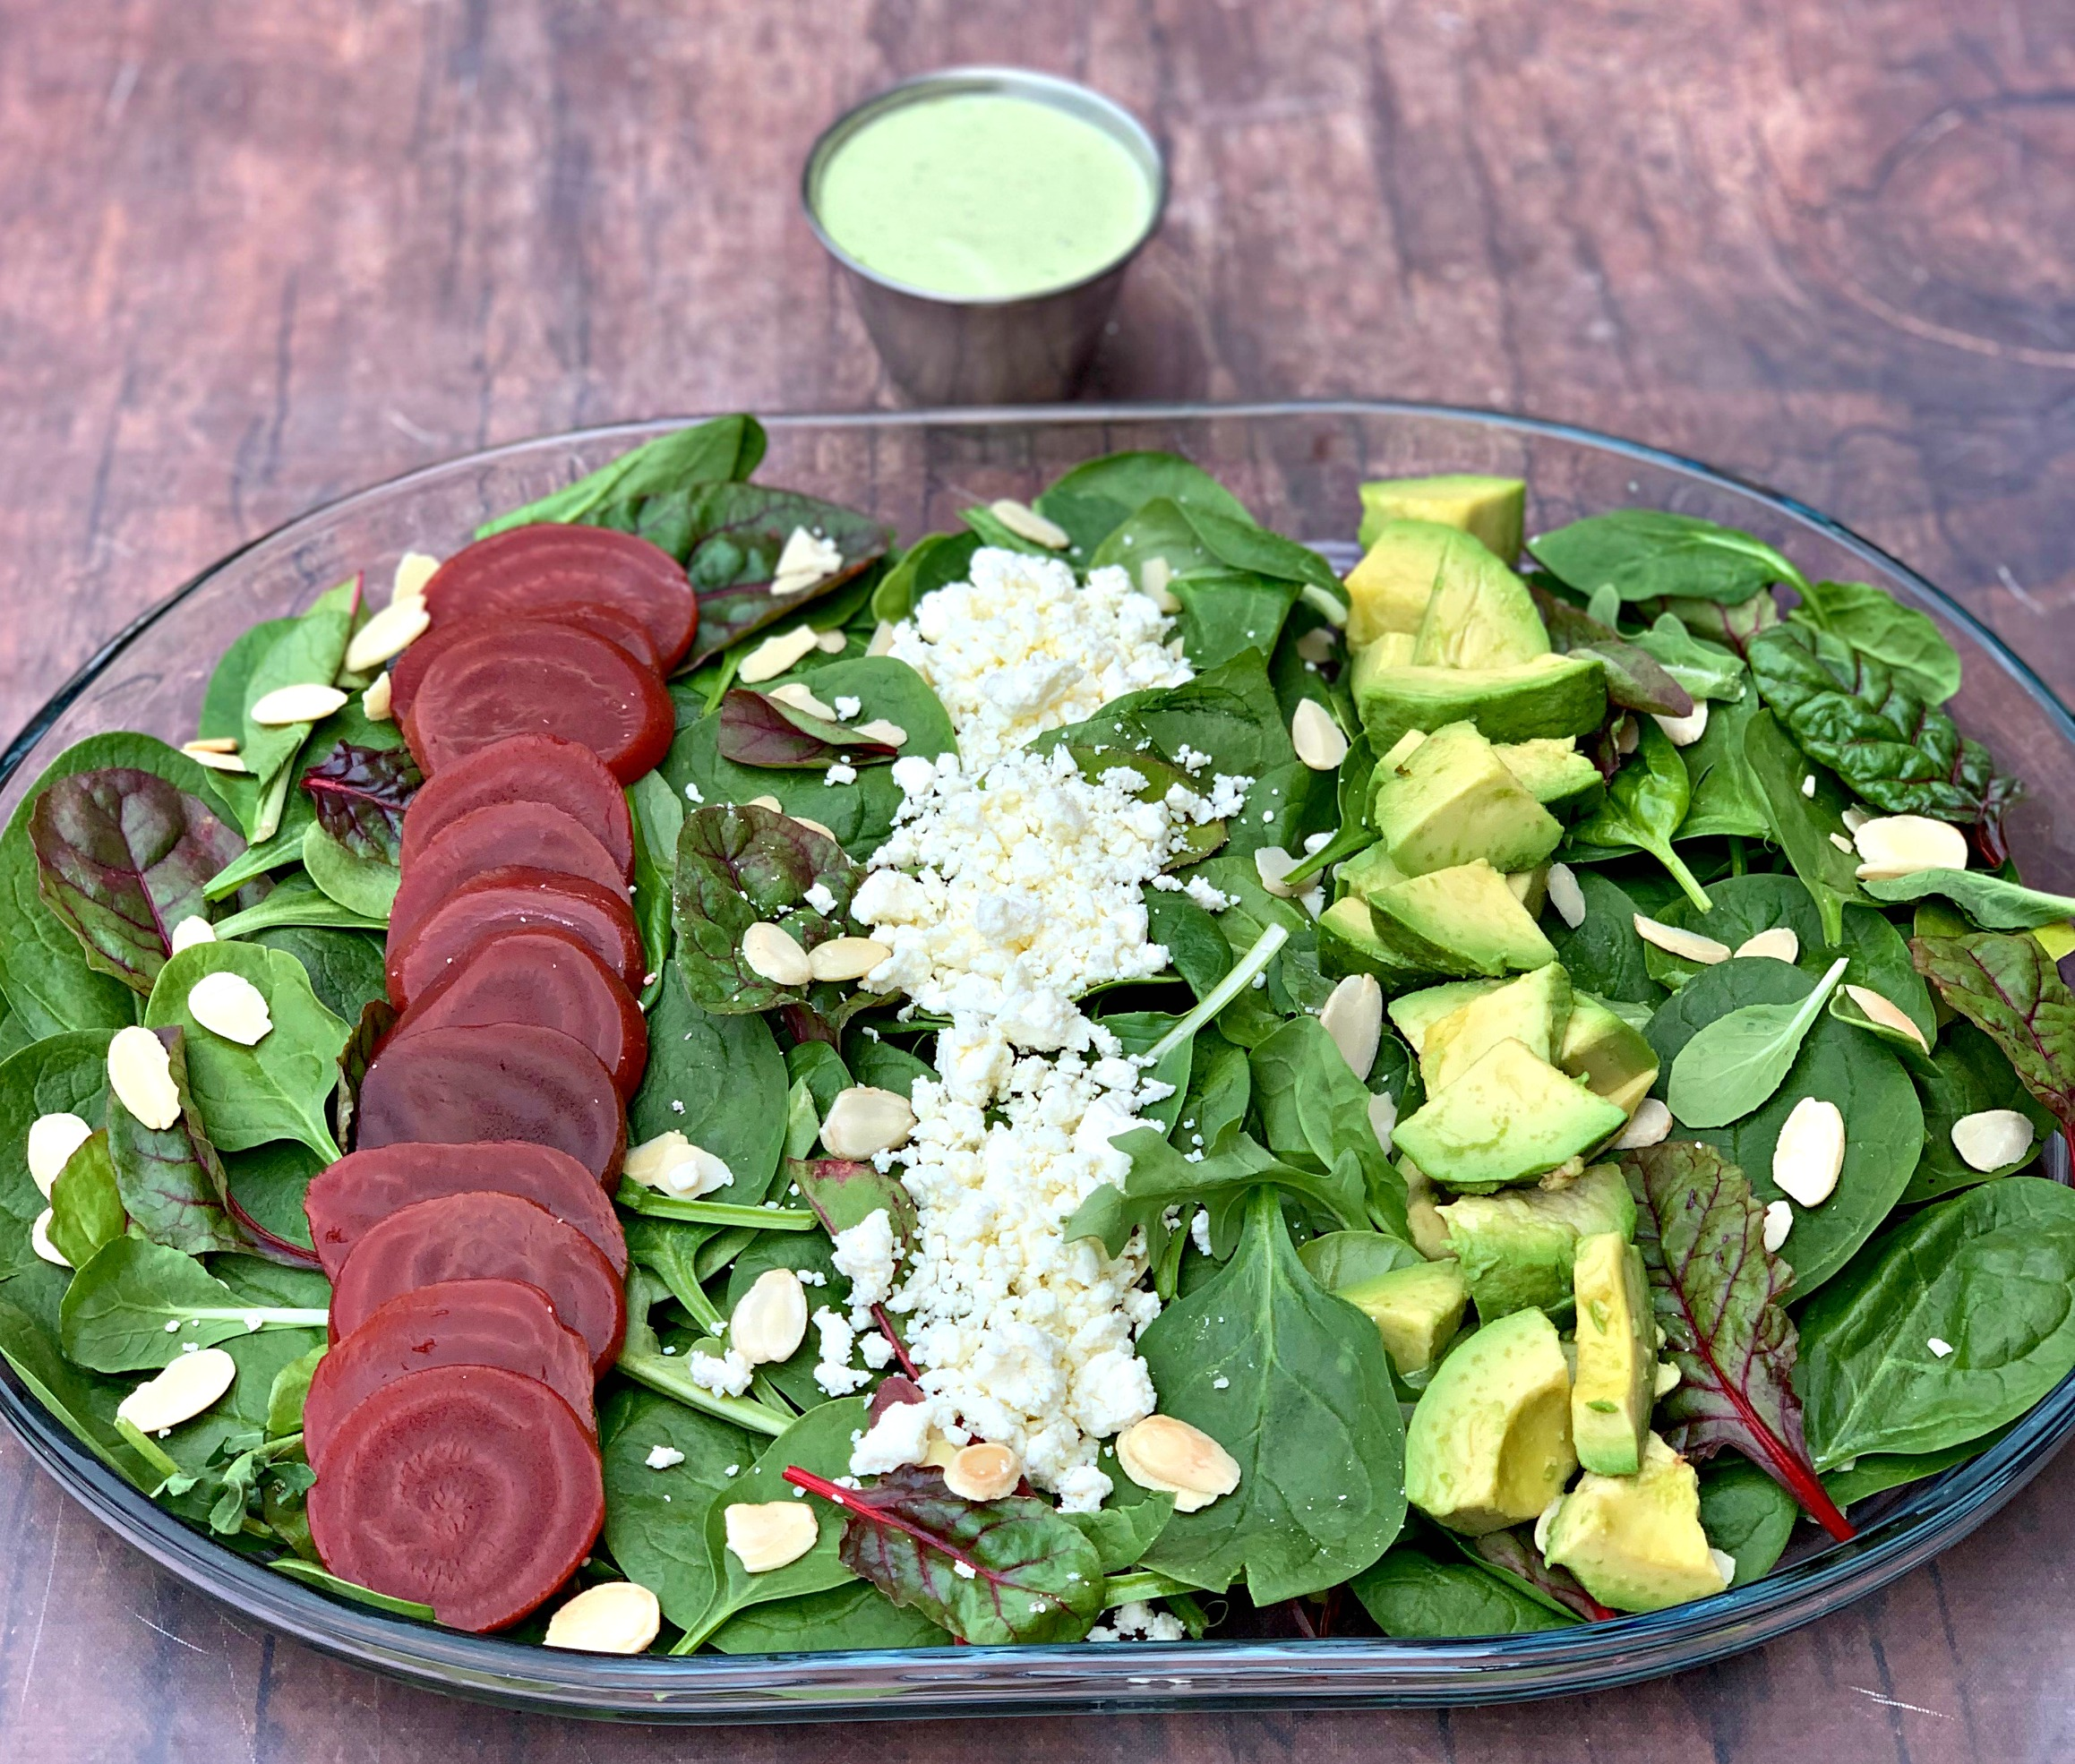 Green Goddess Salad in a glass bowl